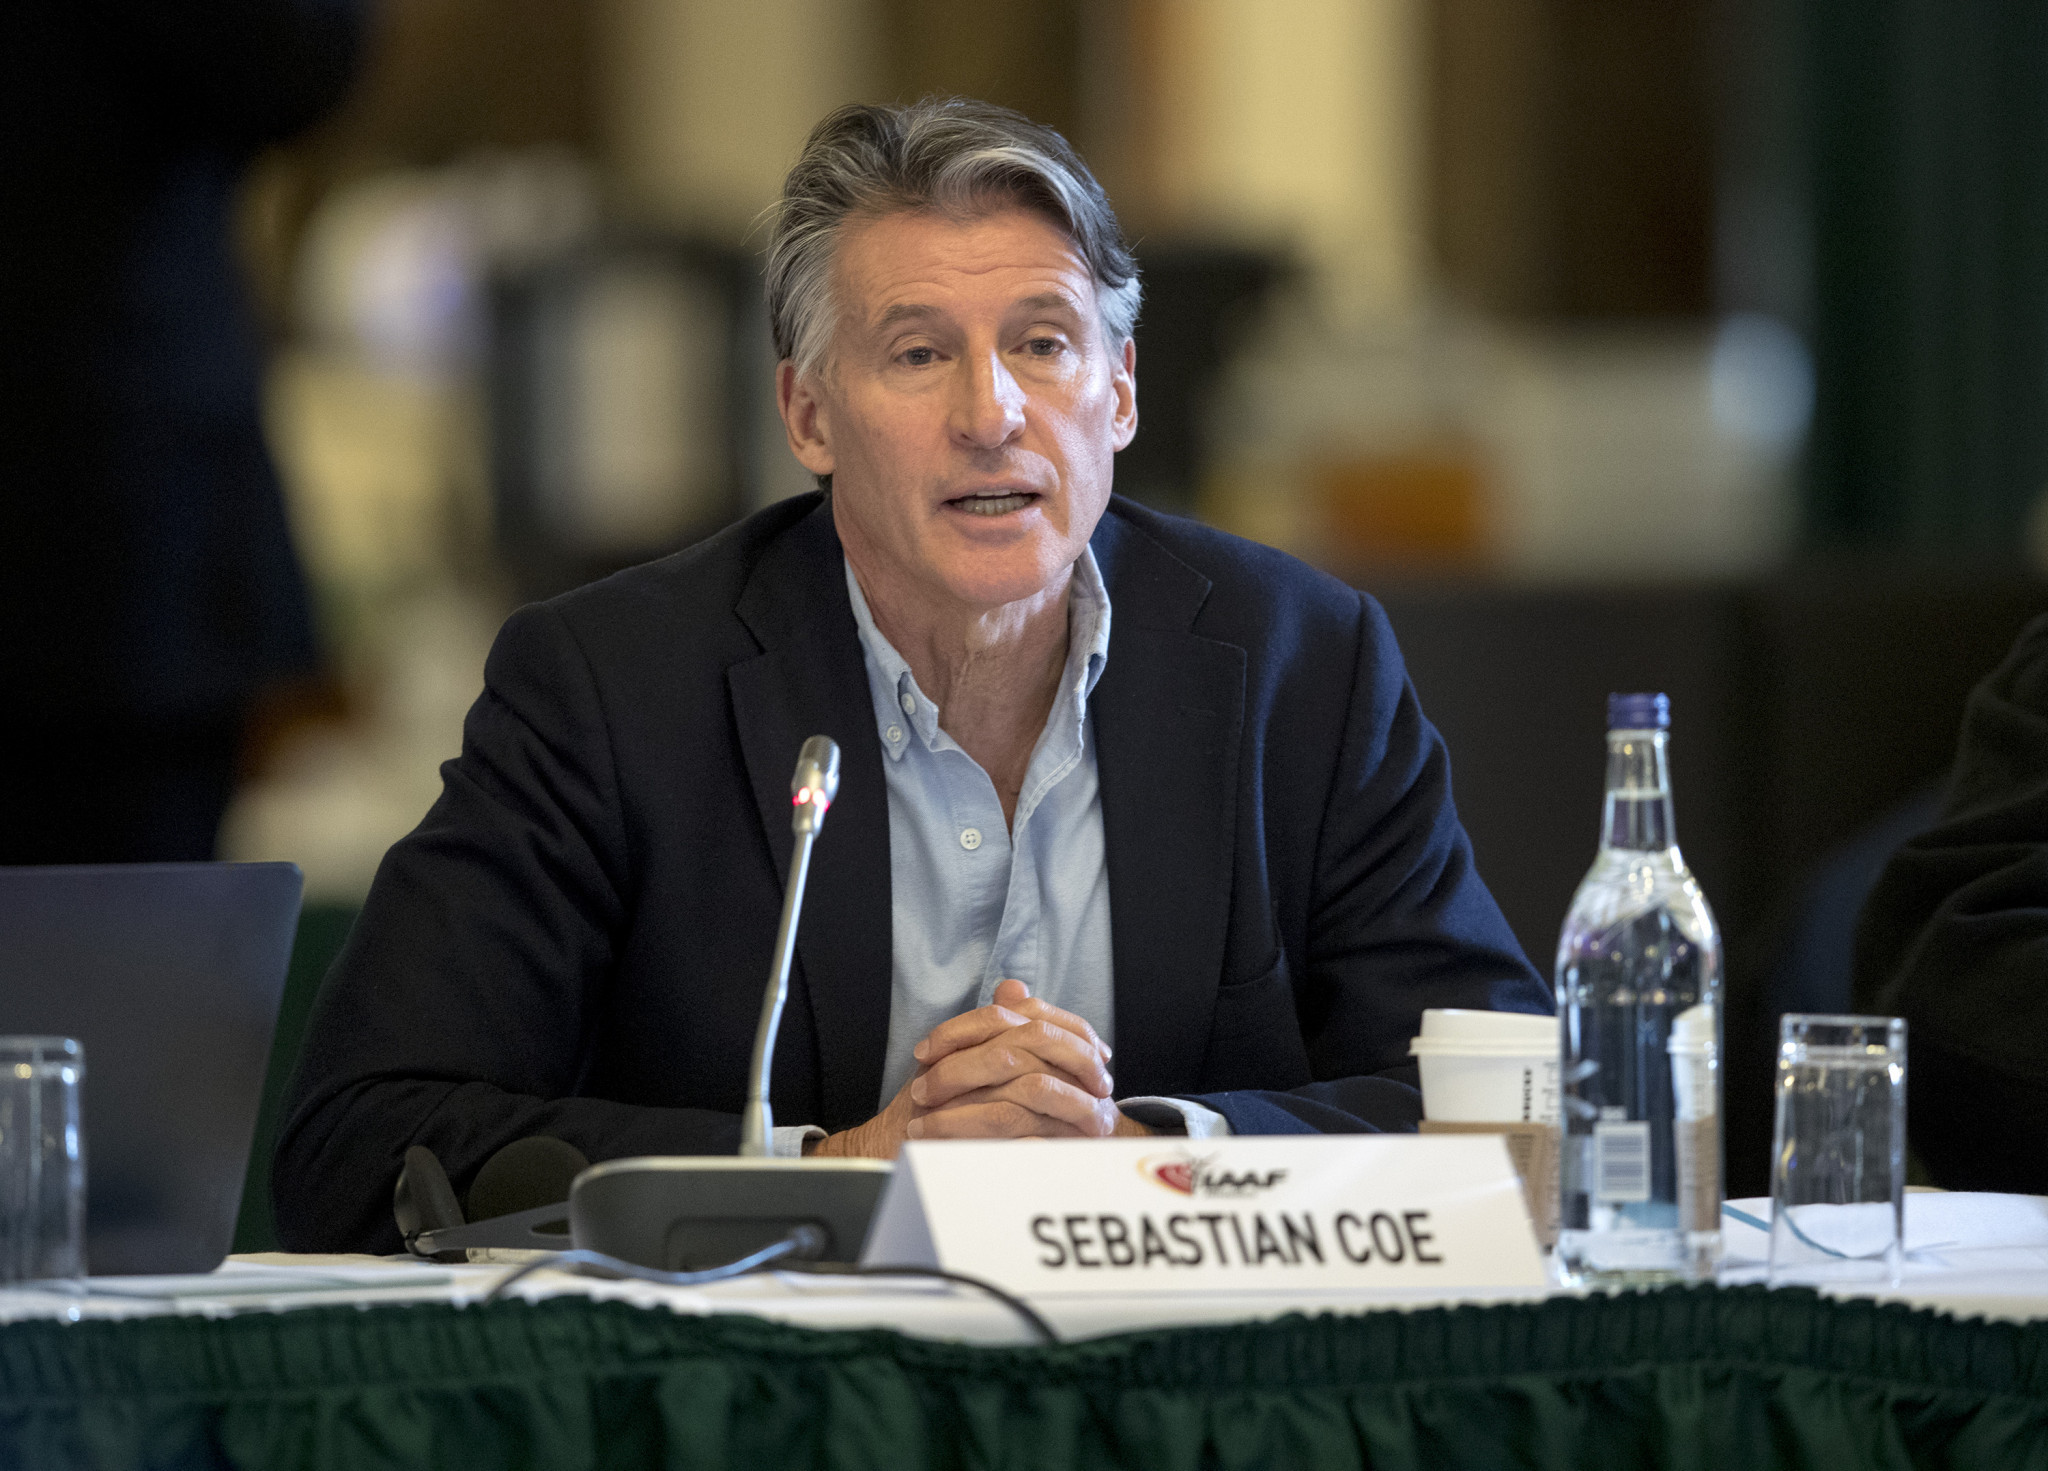 IAAF President Sebastian Coe stated the governing body needed to ensure a level playing field for athletes ©Getty Images